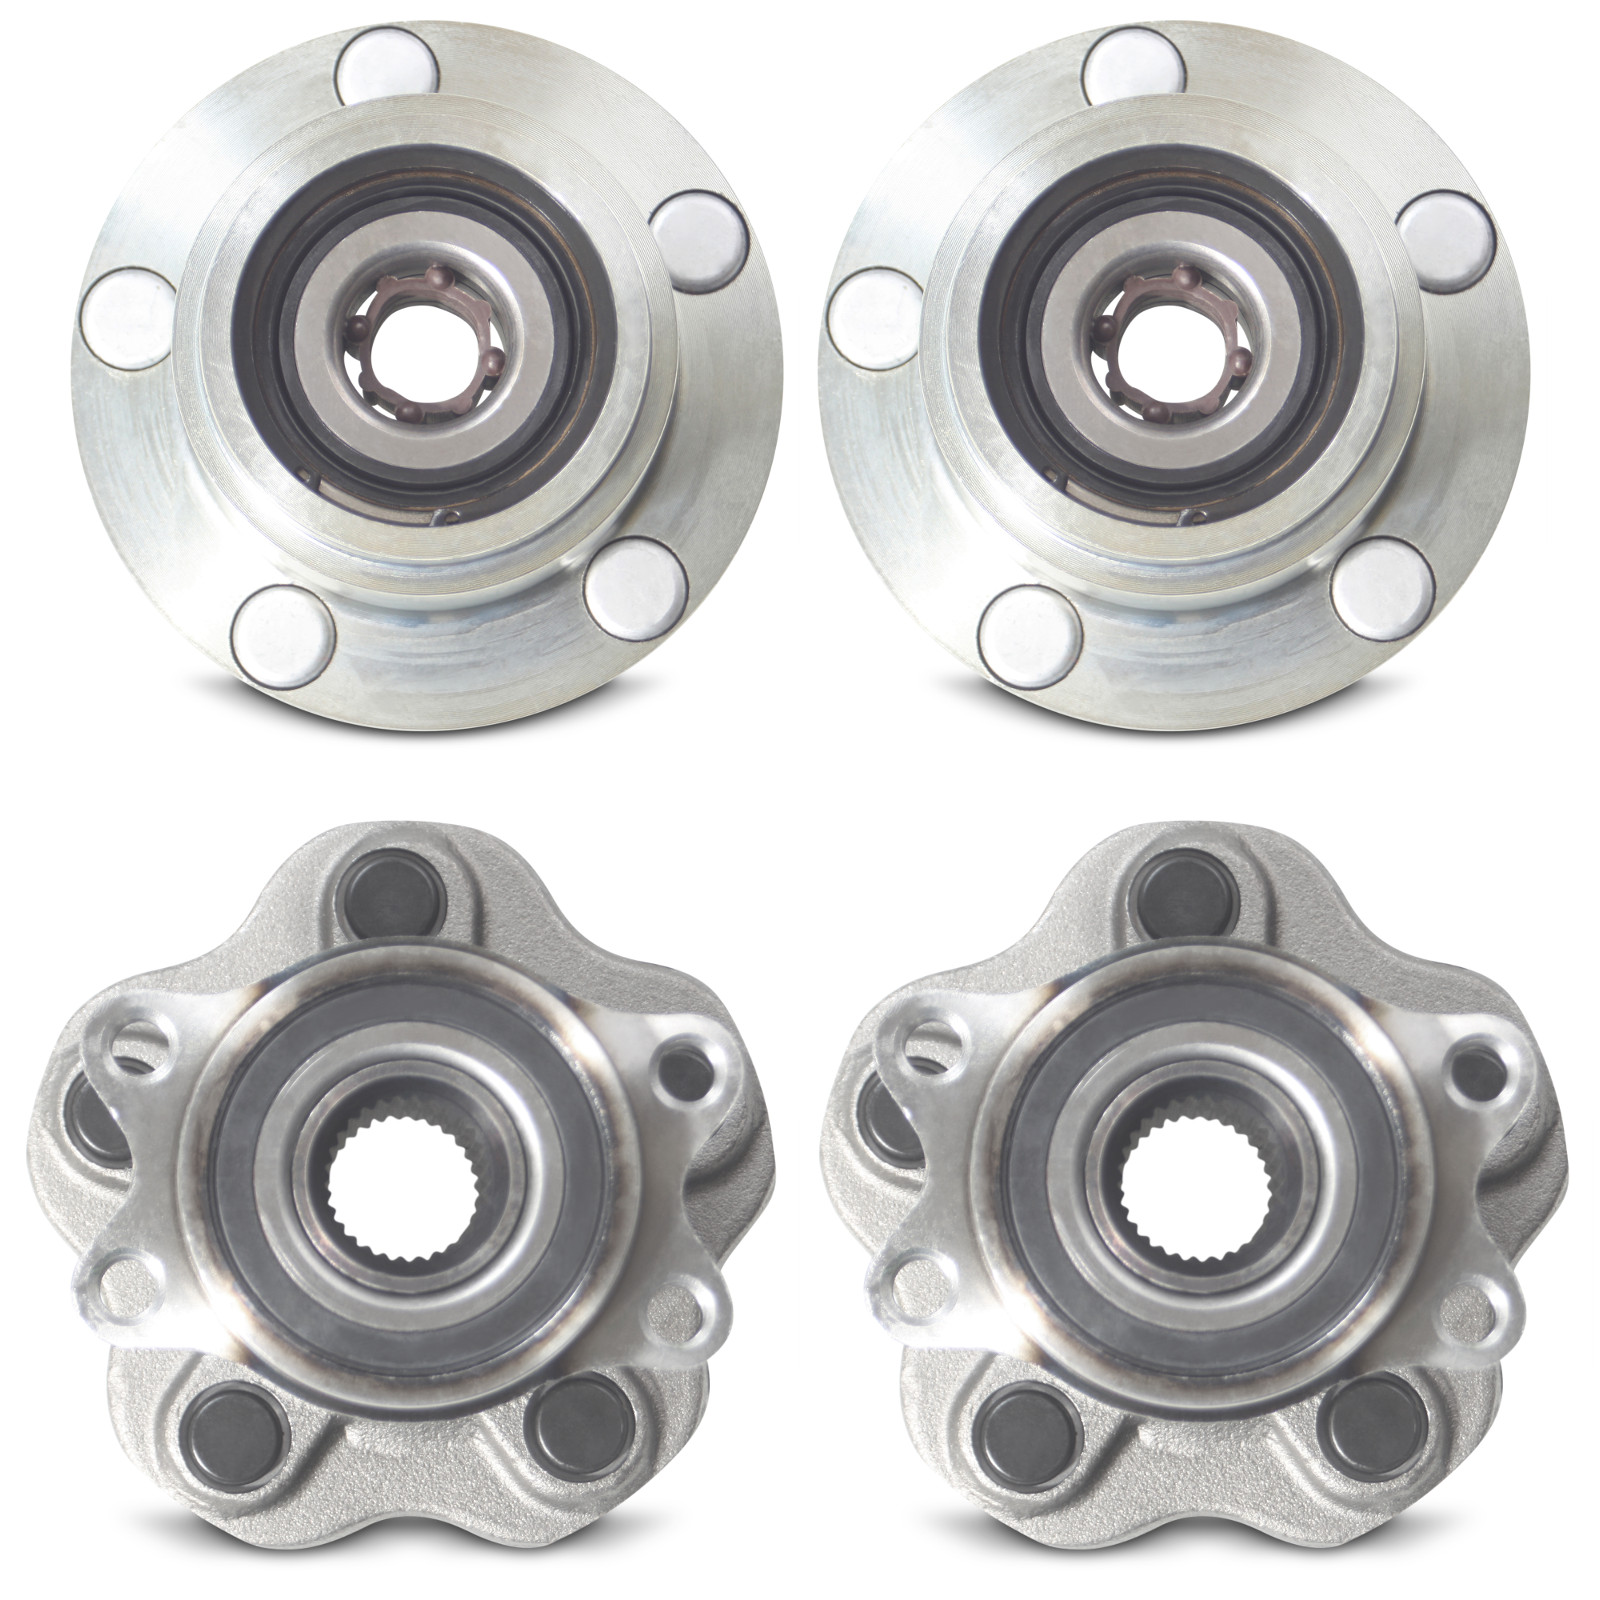 Full Set of 4 to 5 Lug Wheel Conversion Hubs for 1989-1994 Nissan 240SX S13